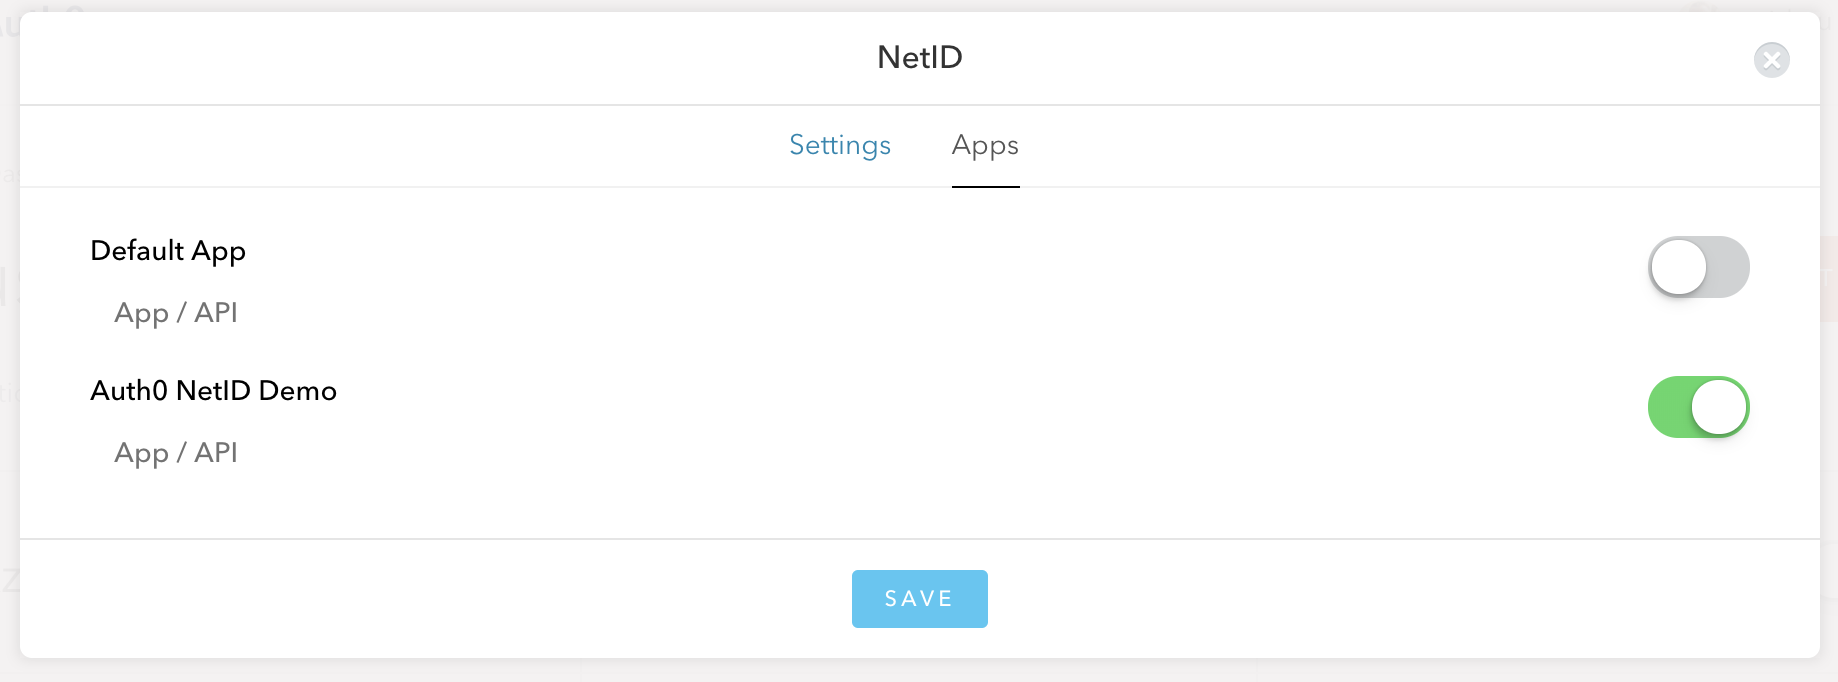 Enabling the Auth0 netID Demo app